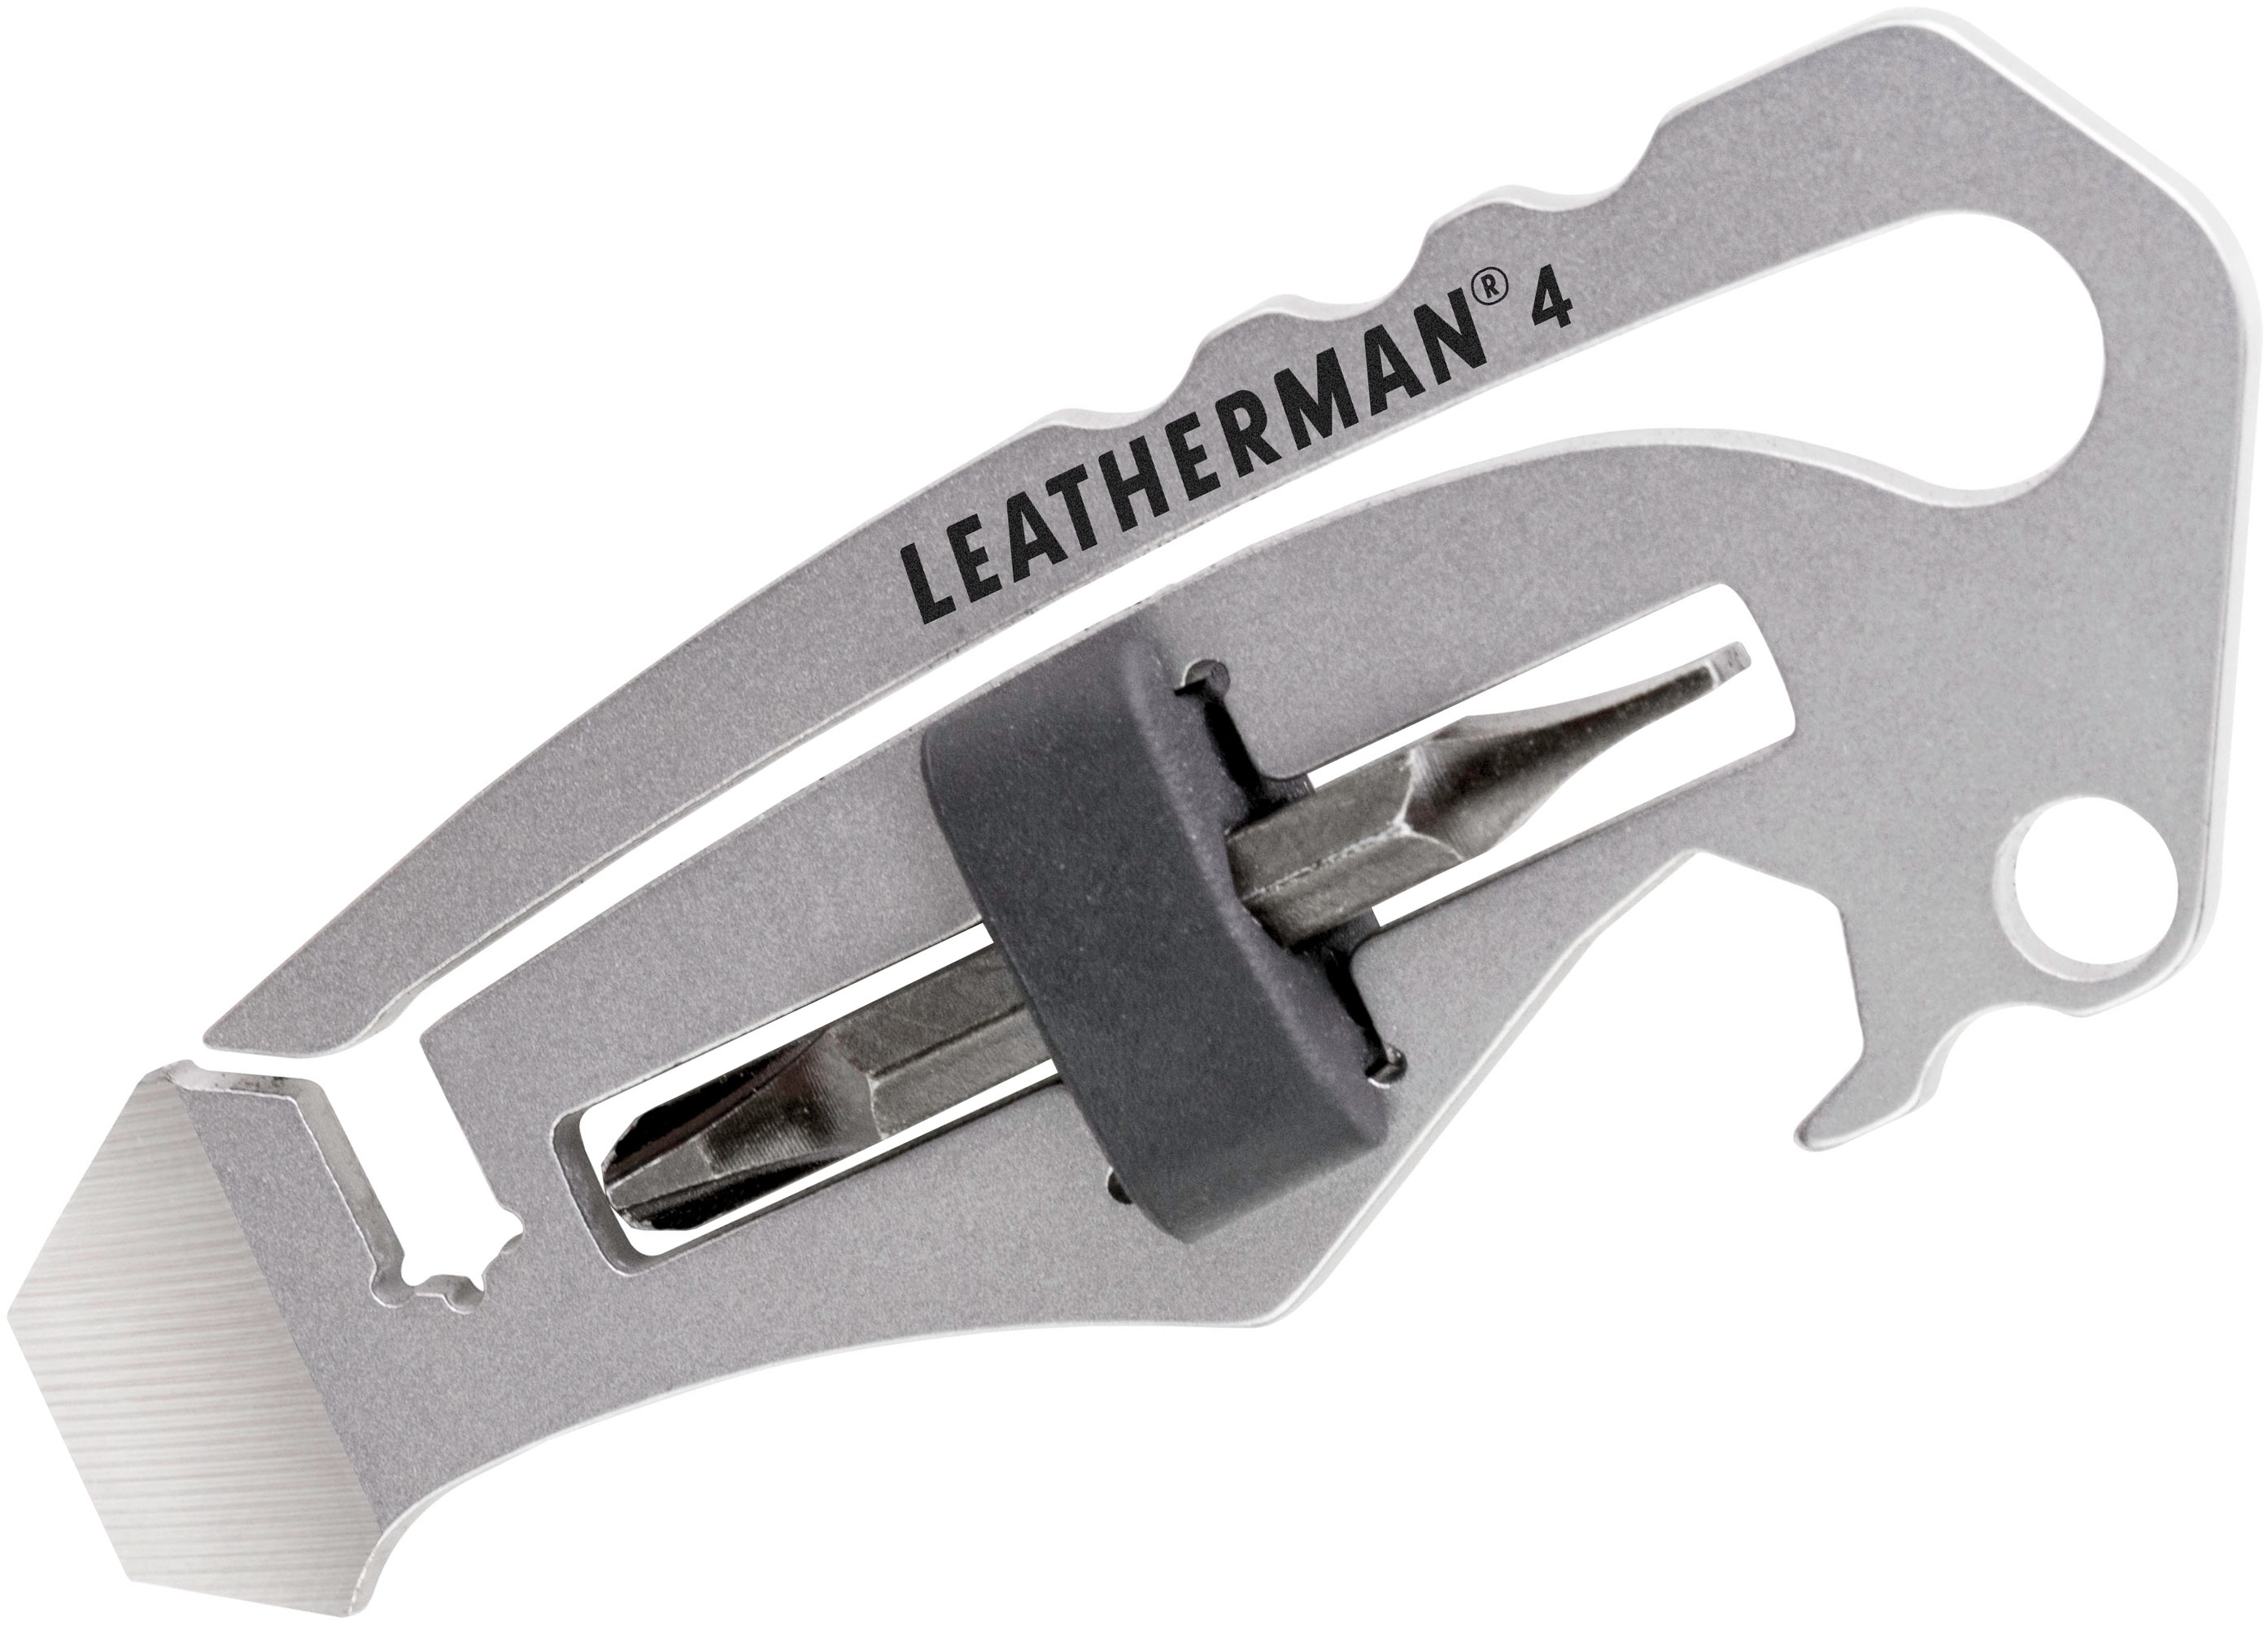 Leatherman Number 4 Keychain Size Mini Multi Tool